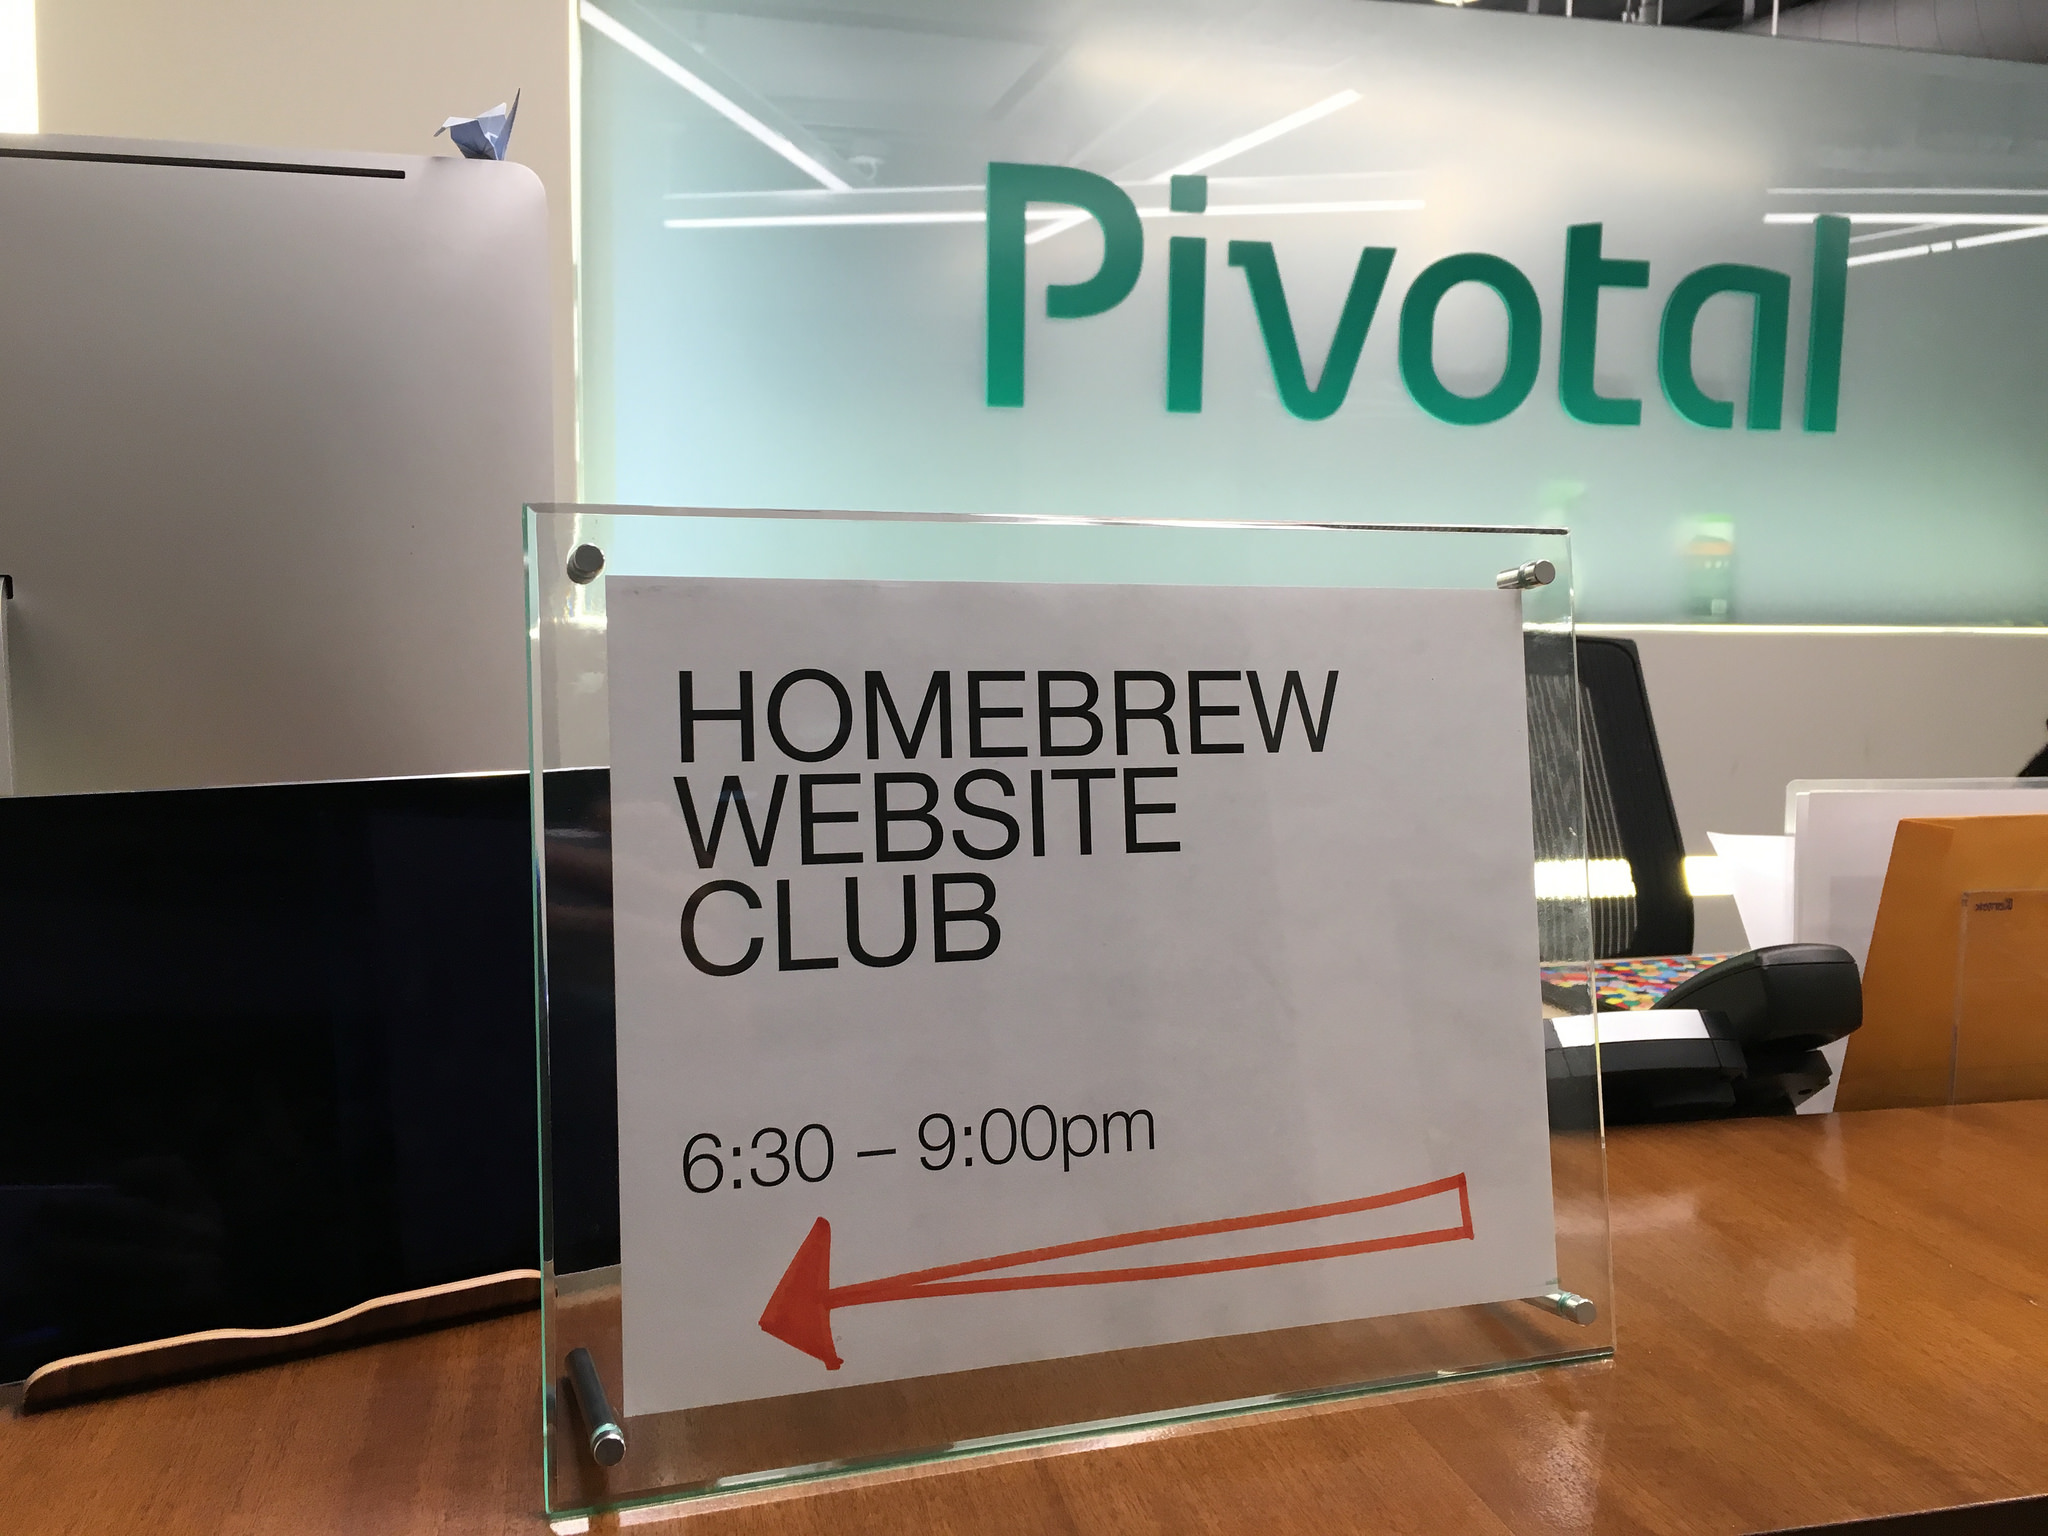 Homebrew Website Club at Pivotal in Santa Monica